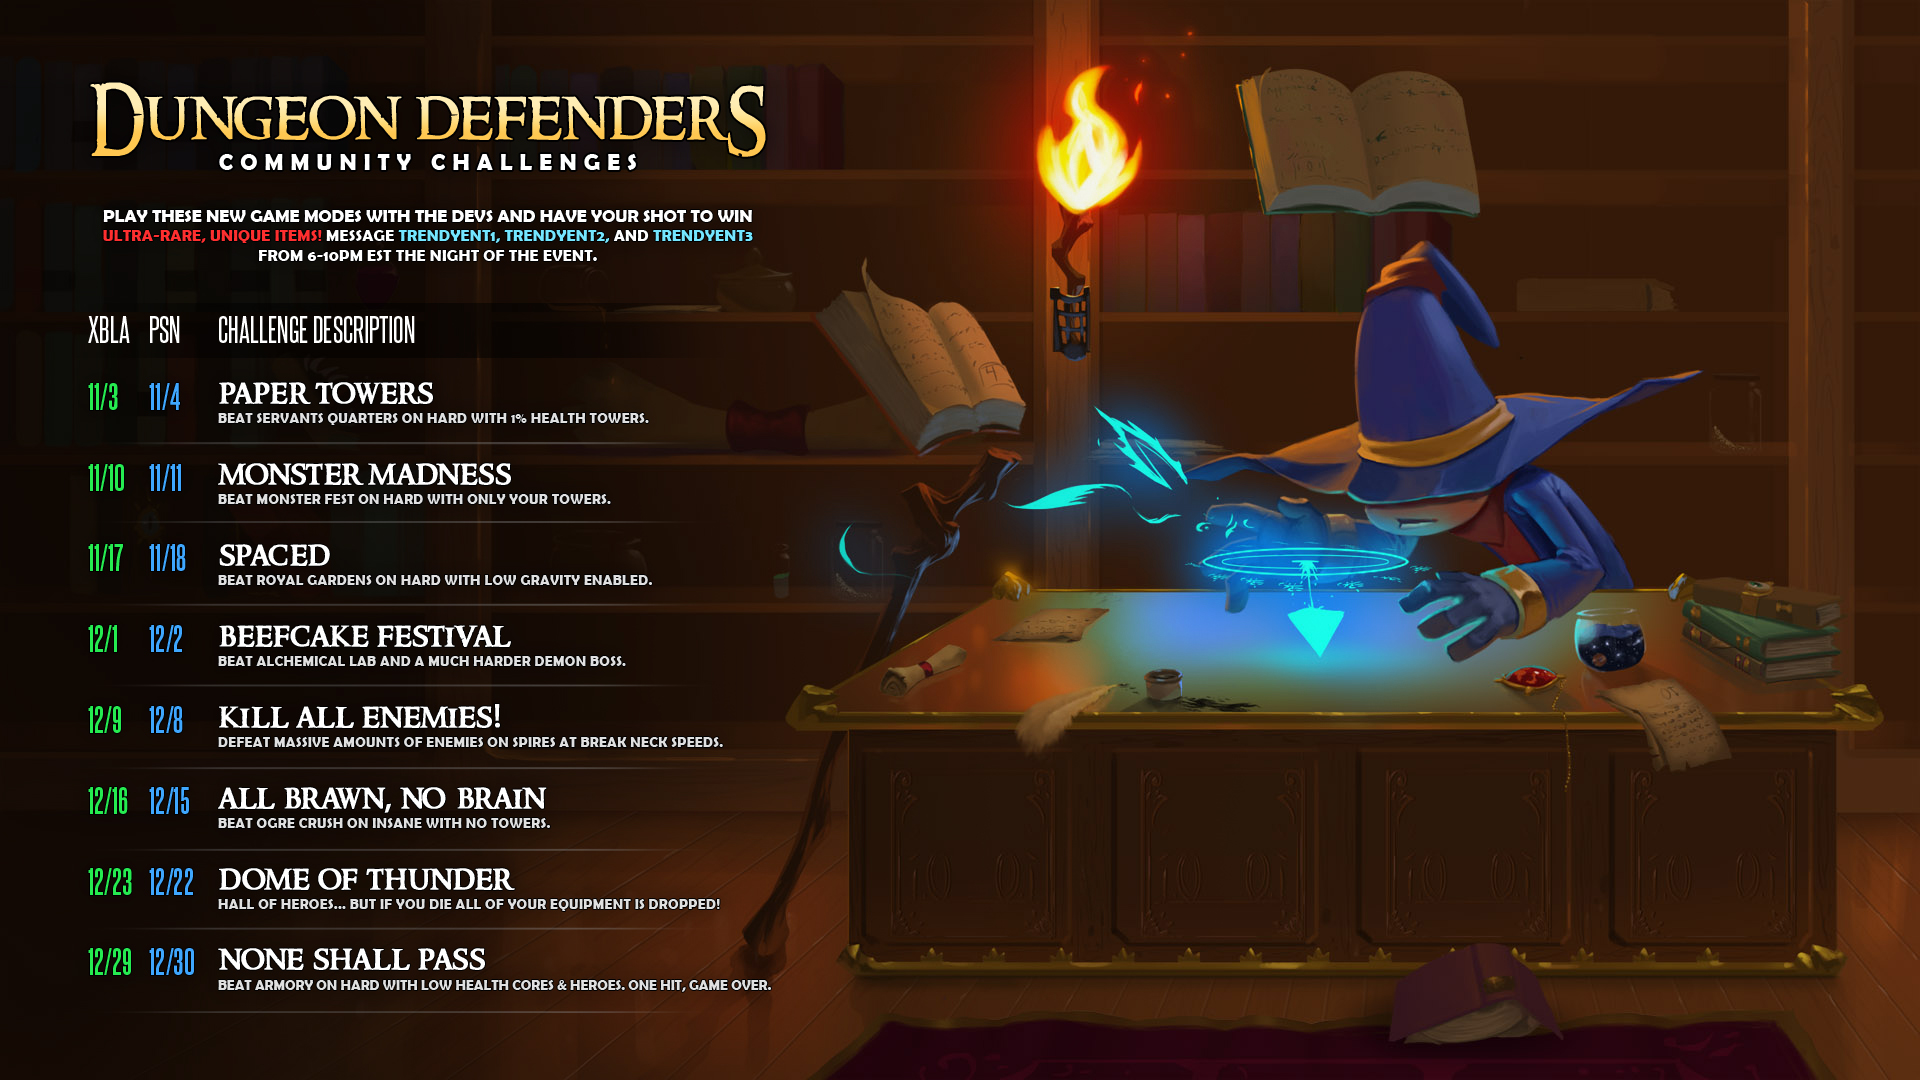 Dungeon defenders events revealed hard stuff nerd agenerd age - Dungeon defenders 2 console ...